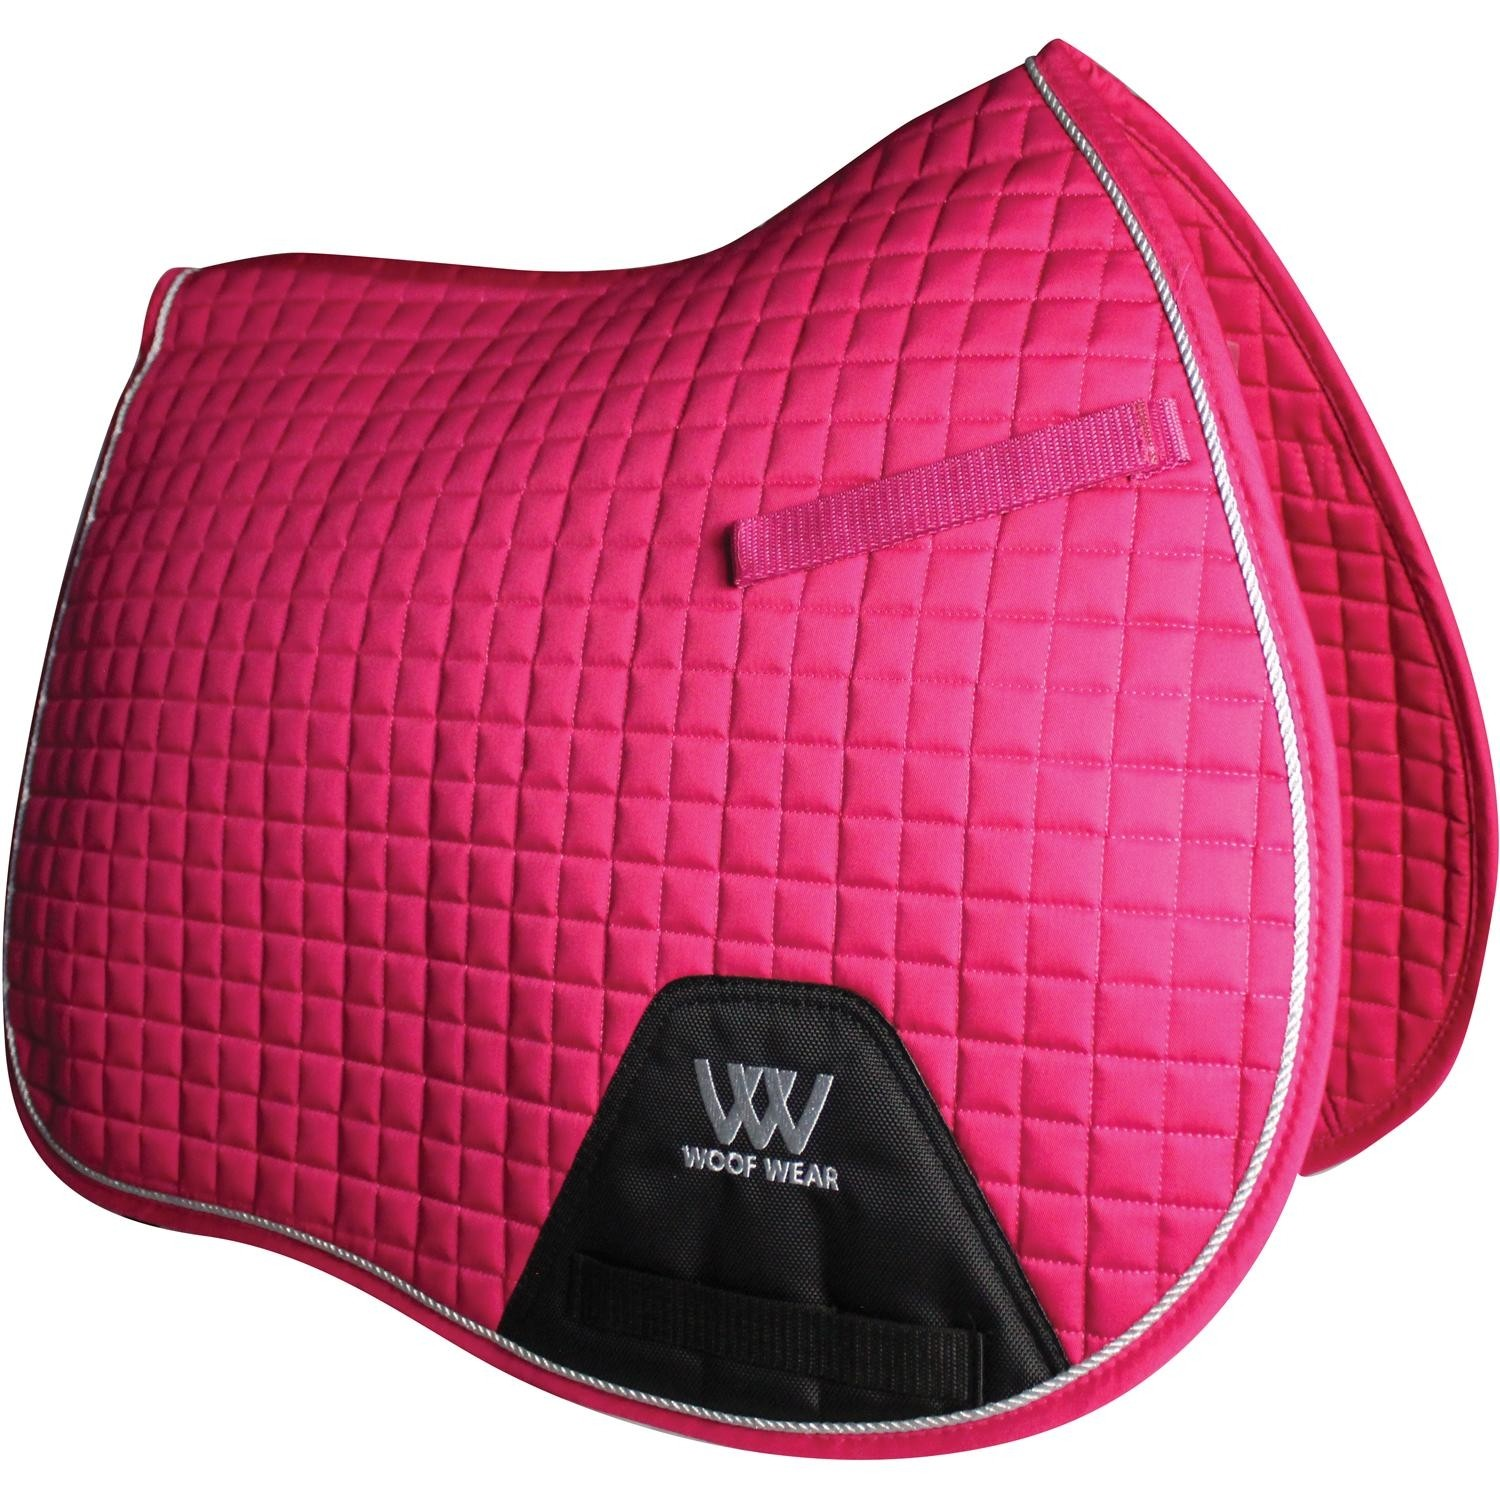 Woof Wear Contour General Purpose Saddle Cloth - Berry